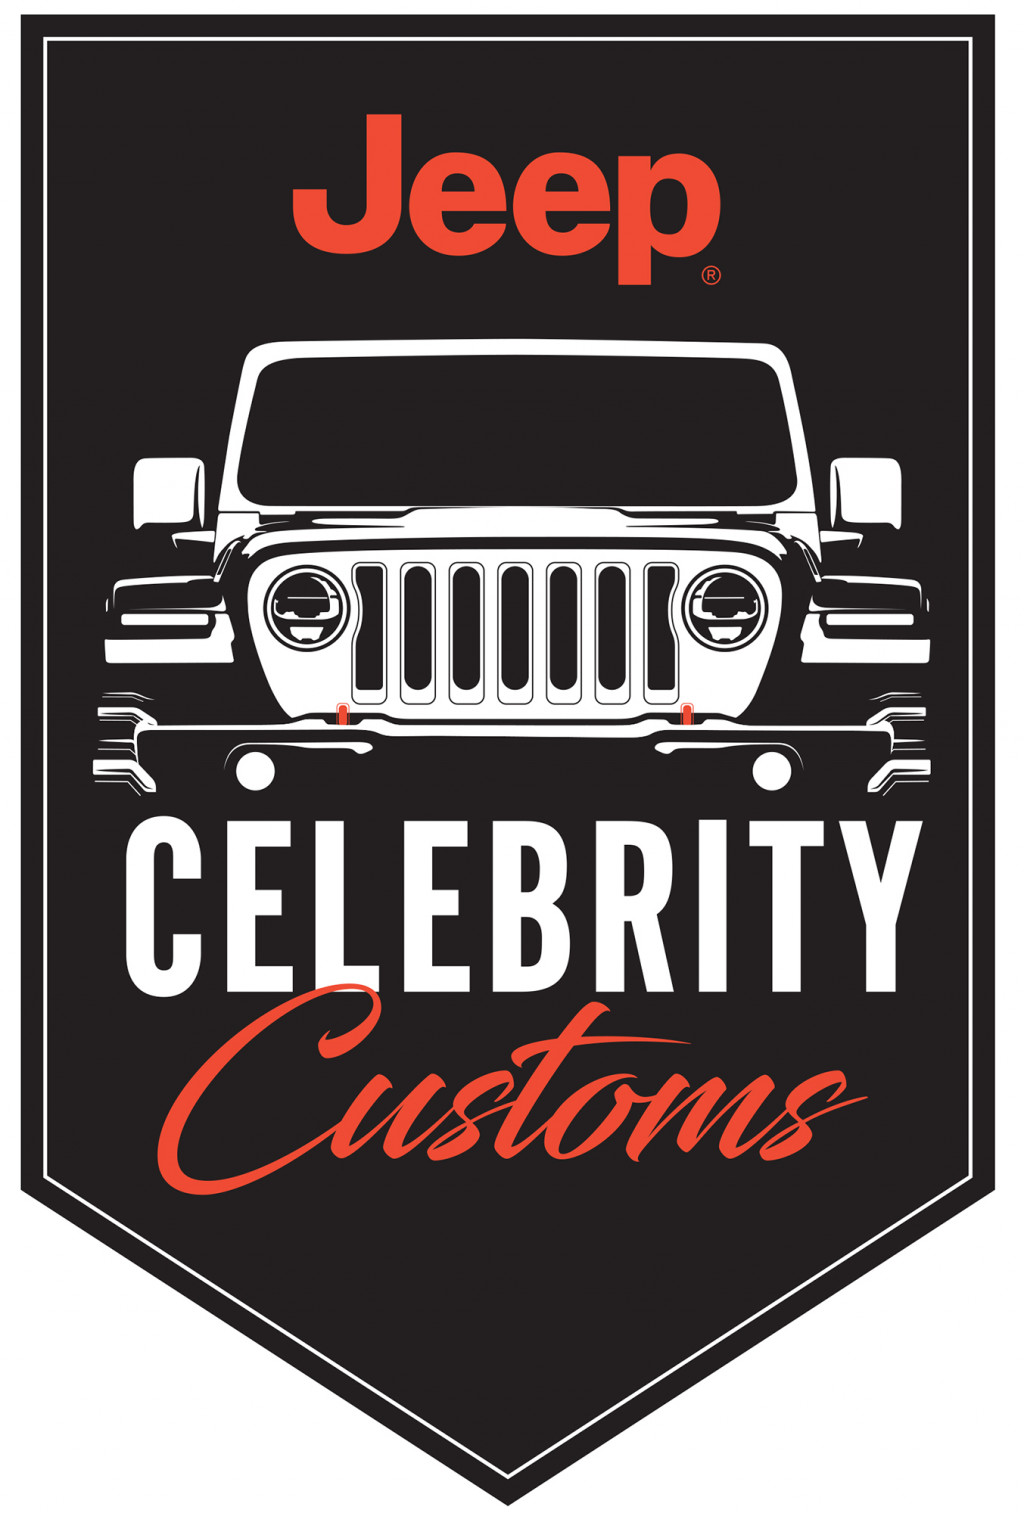 Jeep is turning to celebs for a Wrangler customization contest